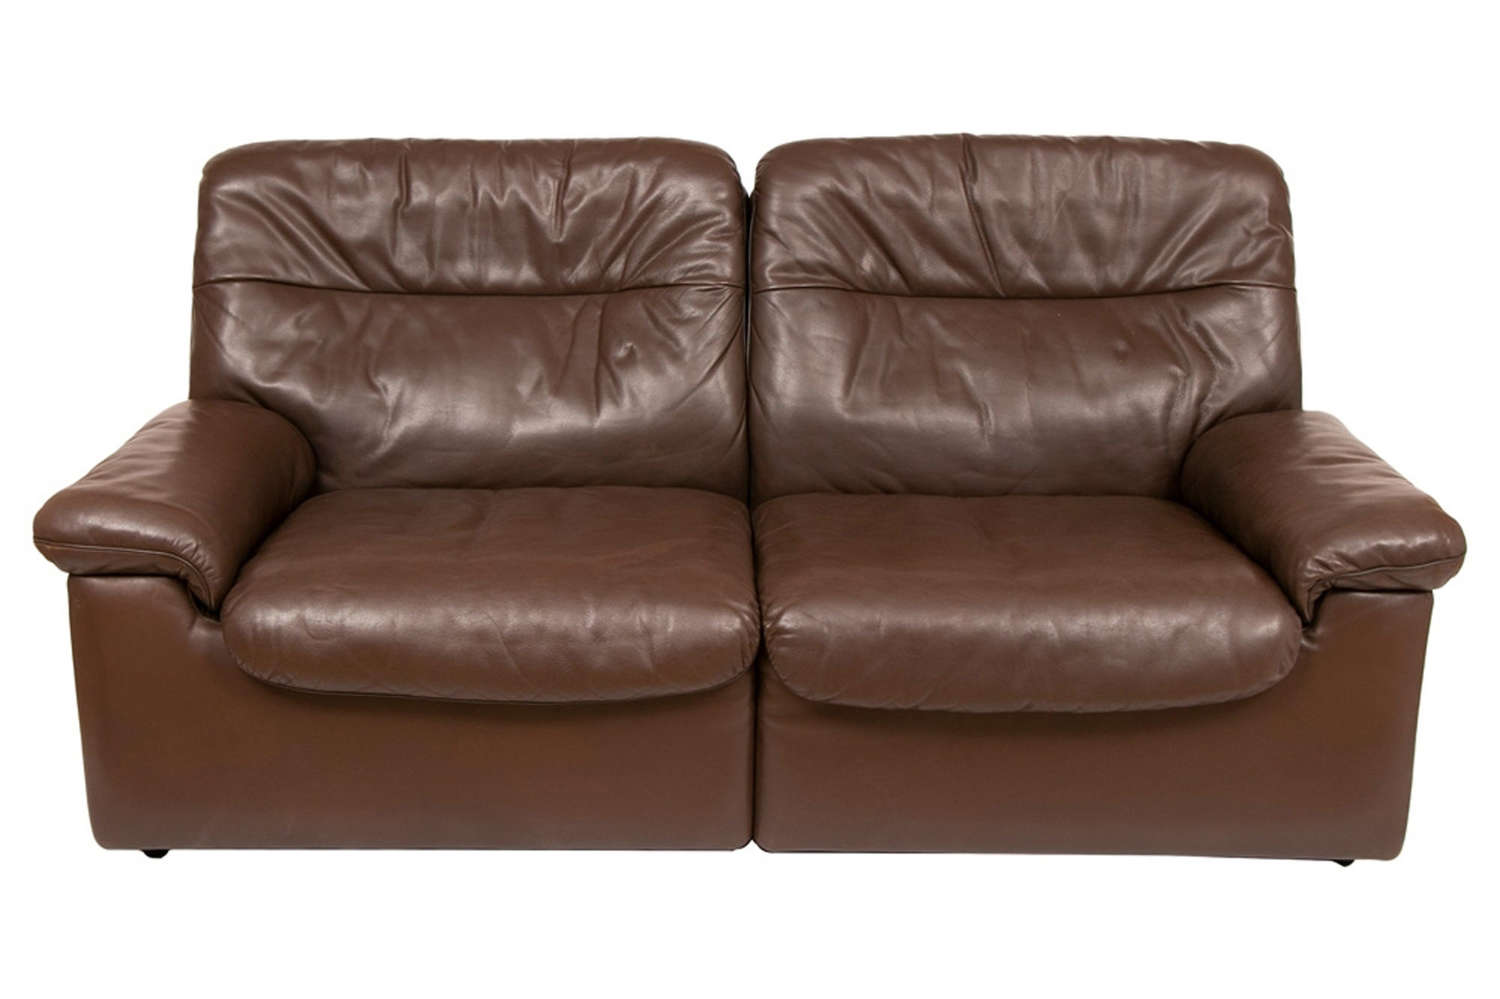 Midcentury De Sede Chocolate Brown Leather Sofa DS-63